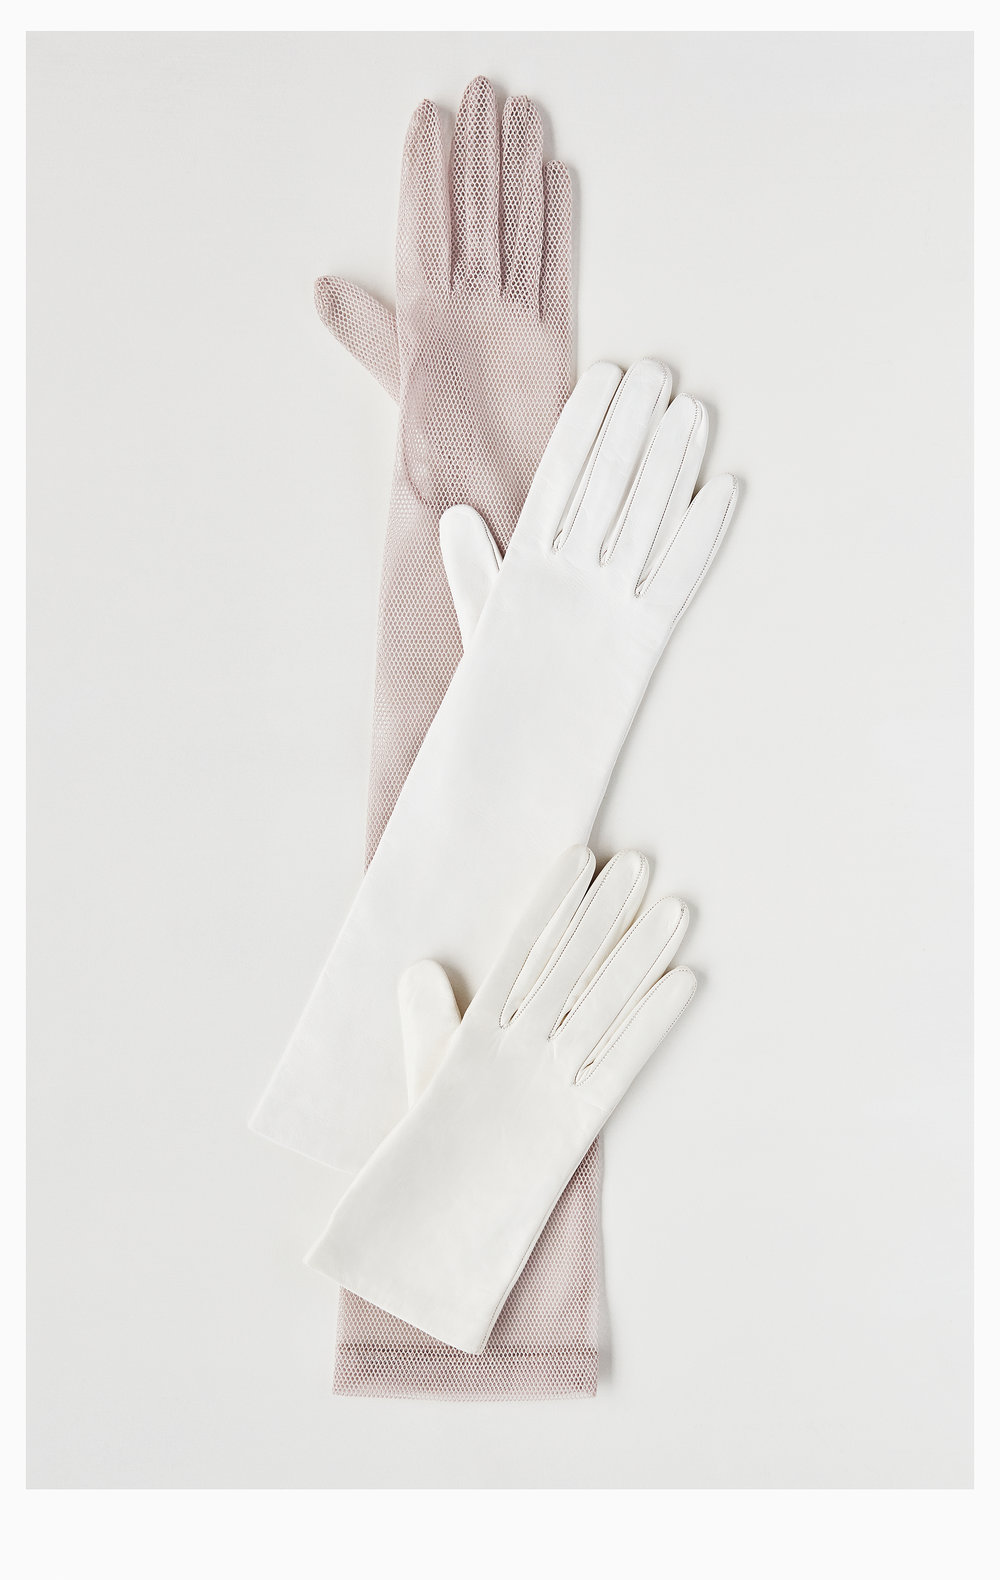 ATARAH_181007_Gloves_White_113_RT_Web.jpg